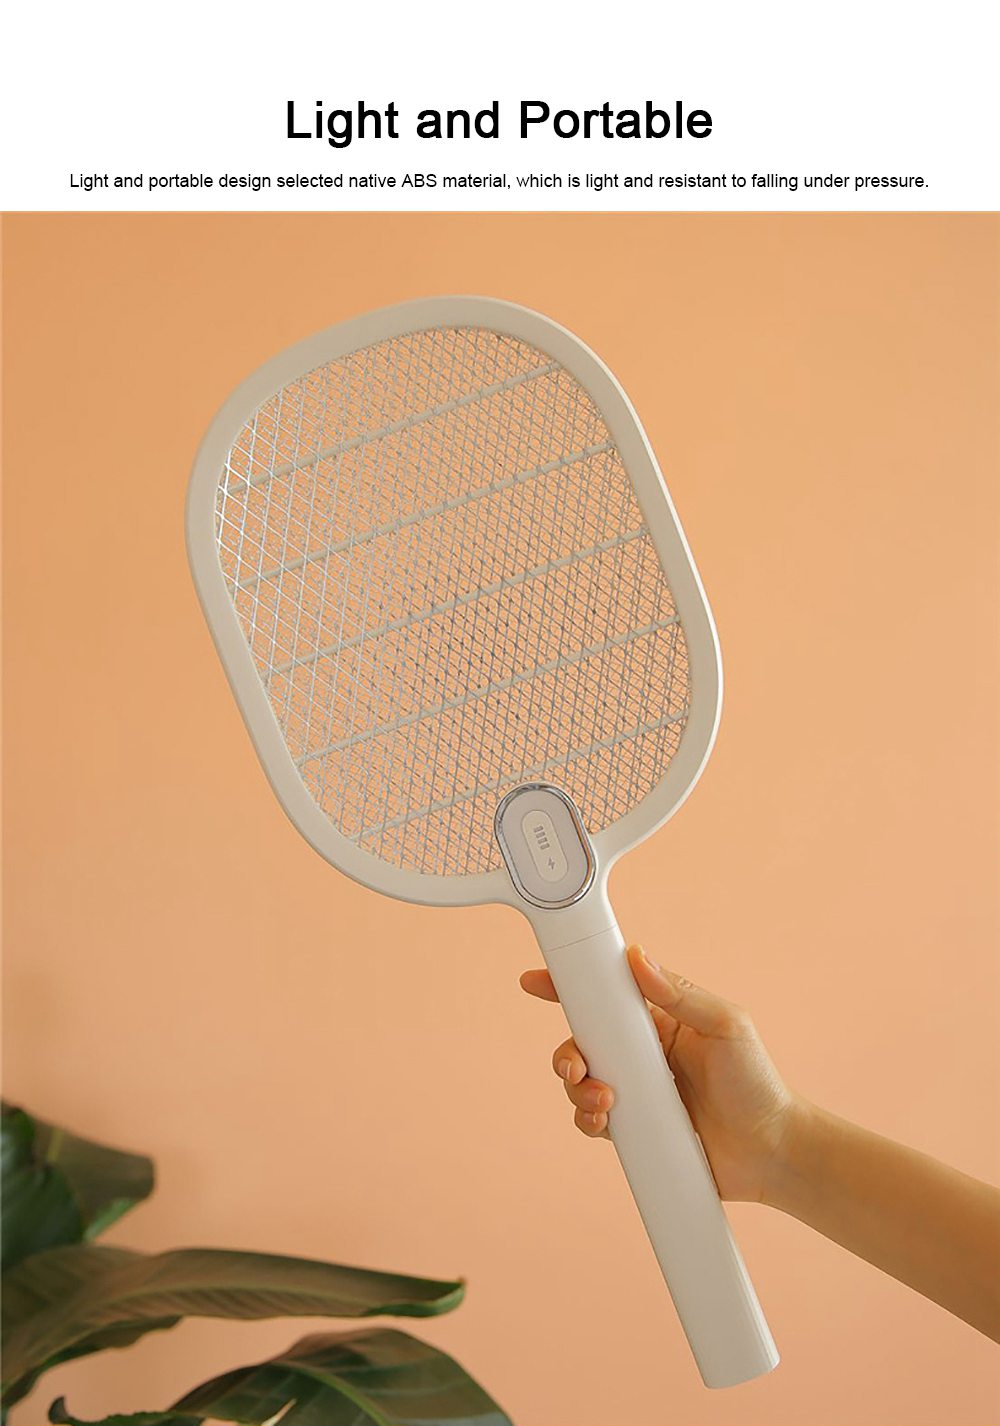 Electronic Mosquito Killer Swatter Metal Mesh Strong Light Mosquito Shoot Bat USB Charging Rechargeable Portable Durable Fly Insect Electric Swatter 4